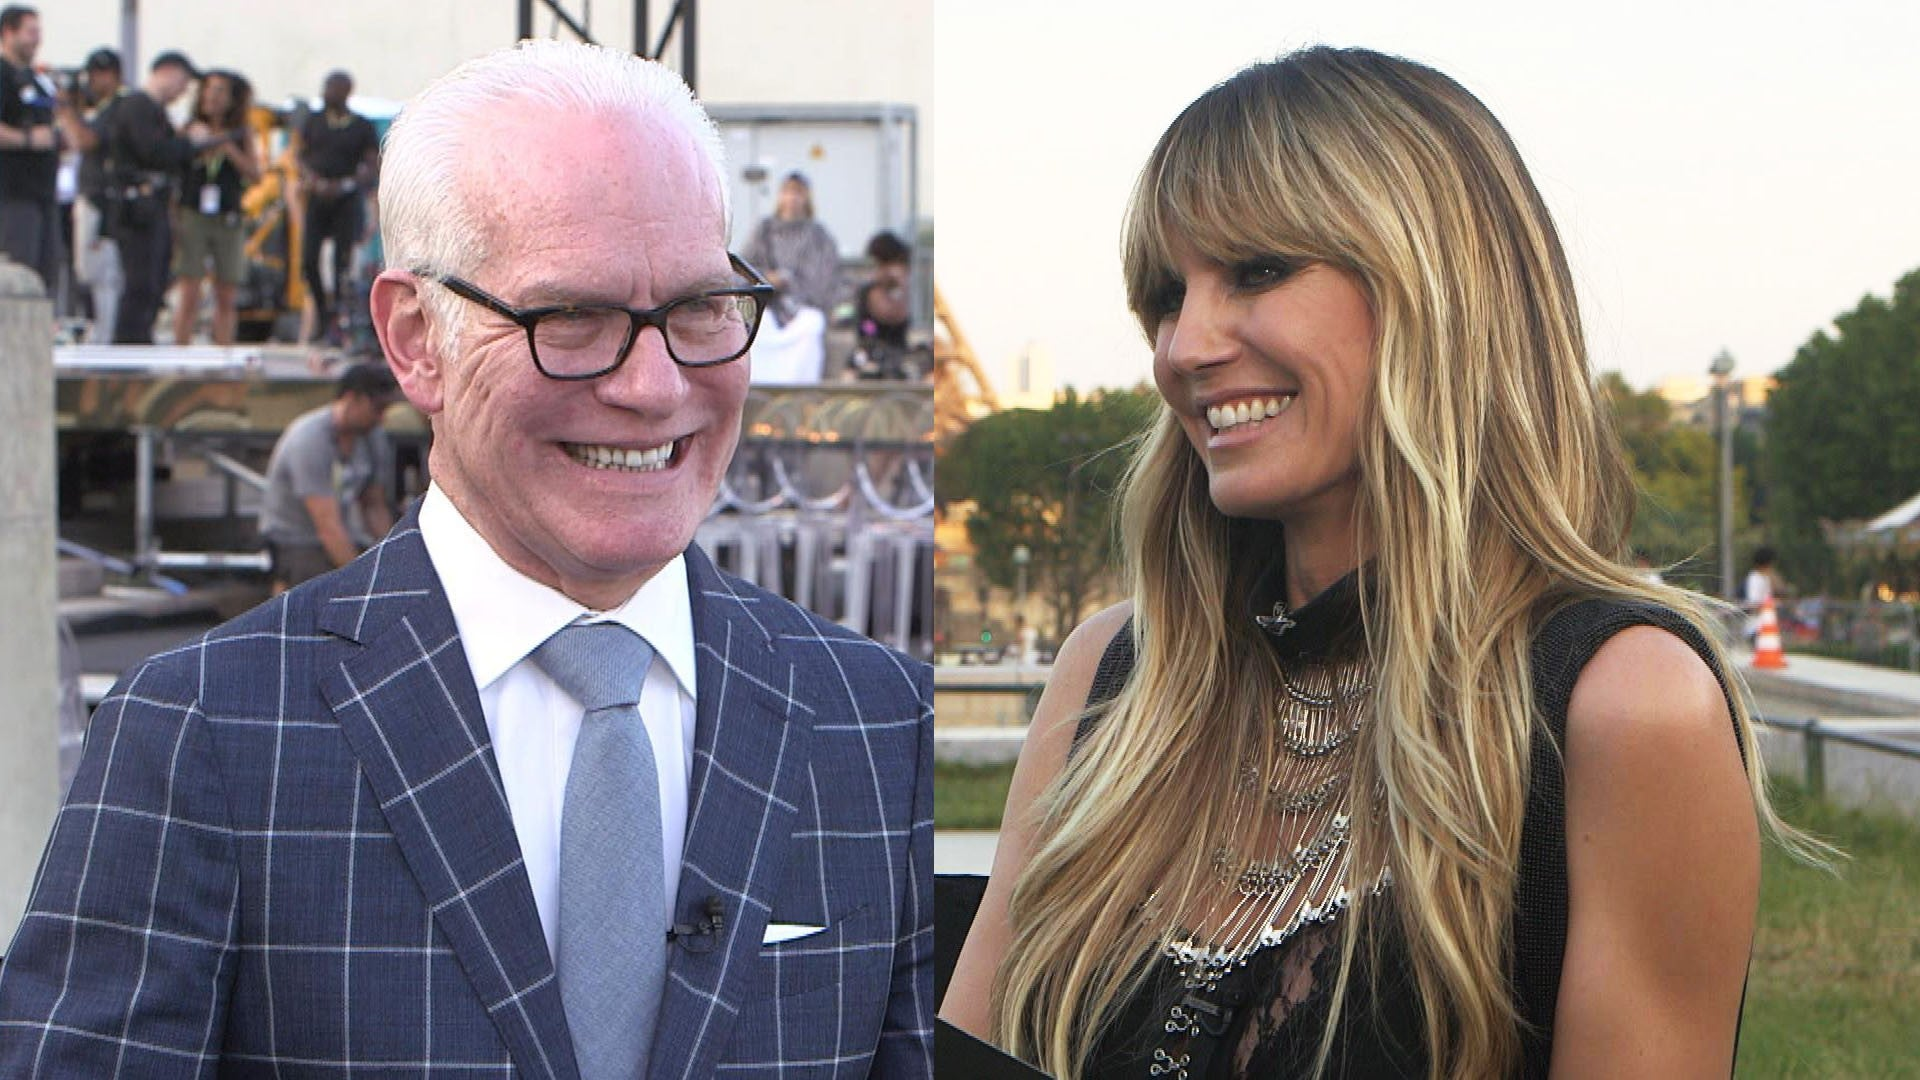 Making The Cut Heidi Klum And Tim Gunn On Creating A More Realistic Fashion Competition Exclusive Entertainment Tonight